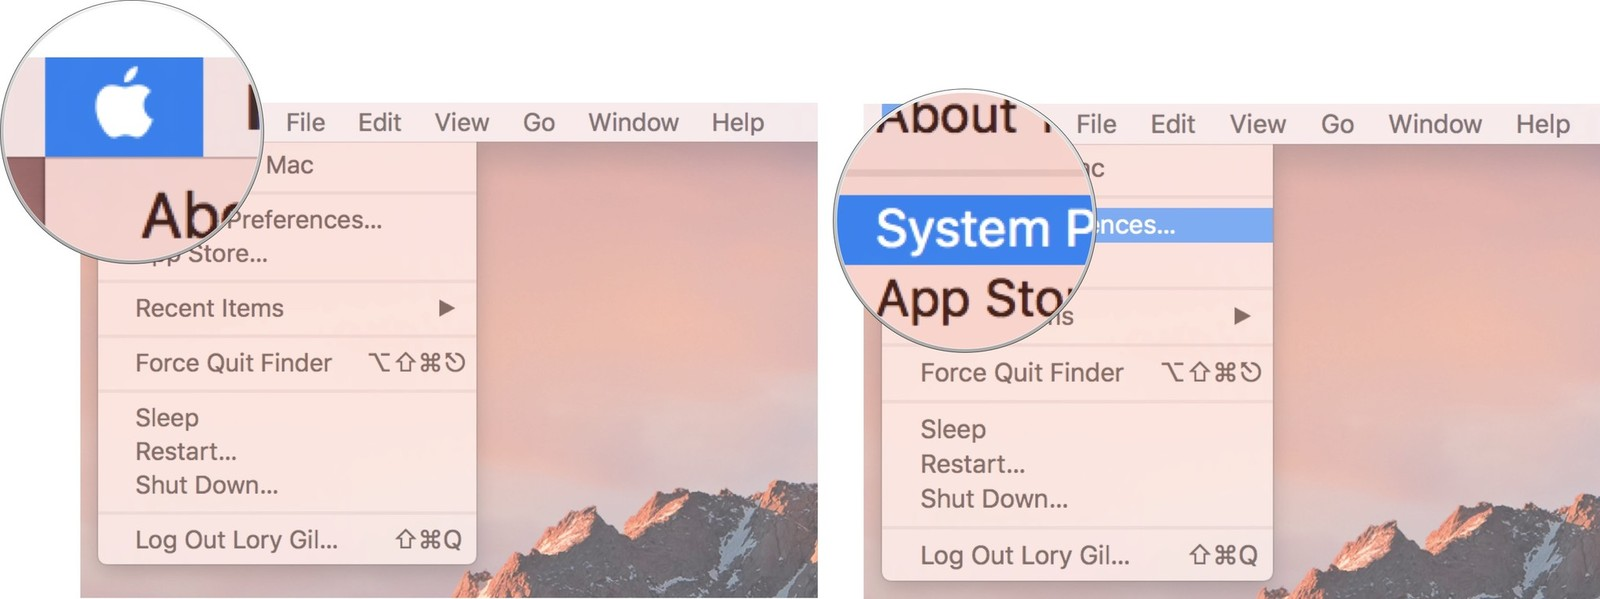 Click on the Apple menu logo, then click on System Preferences